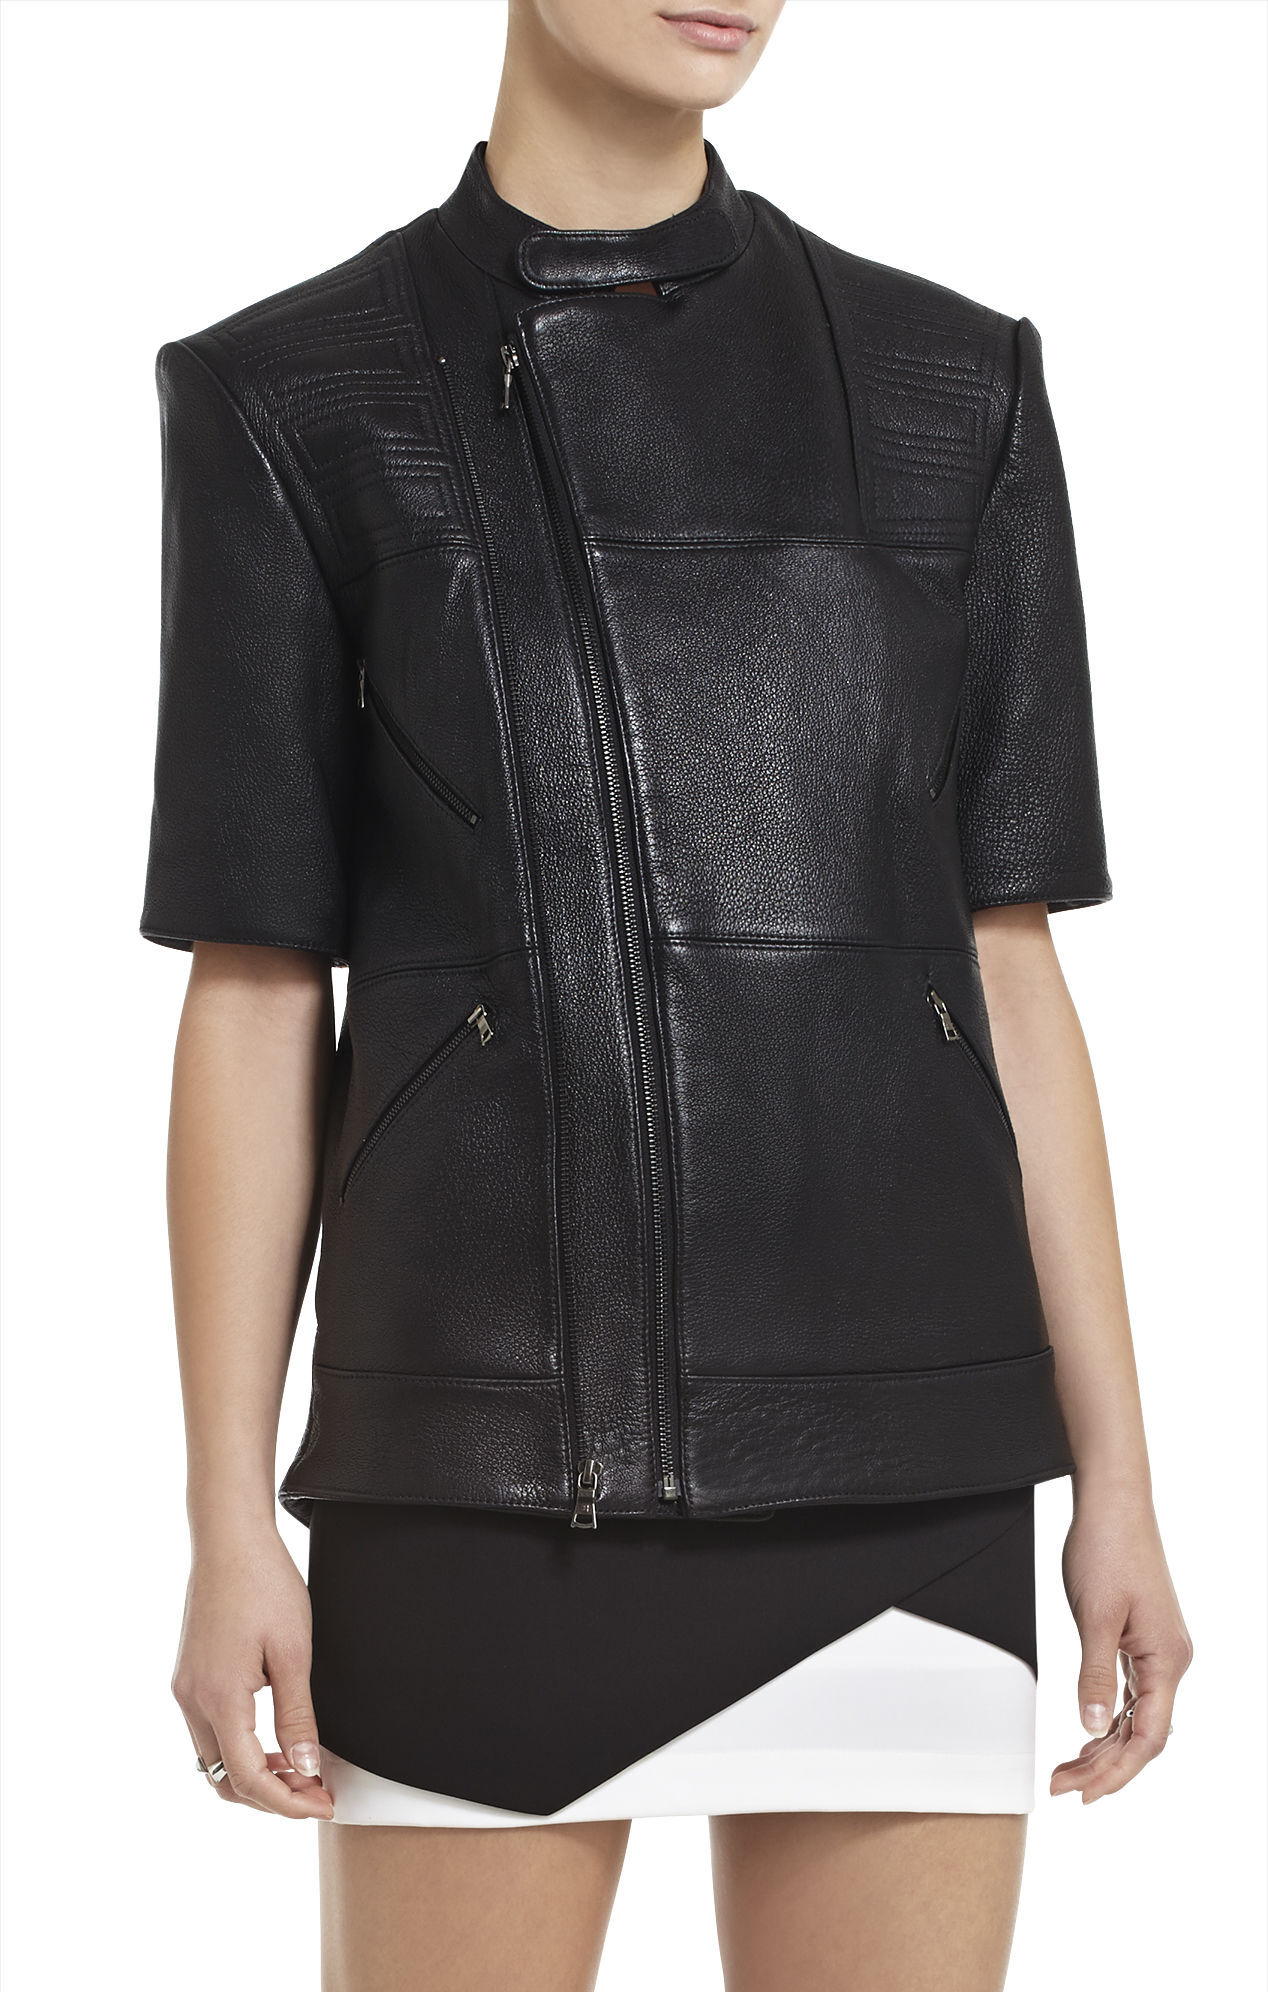 Charnet Short-Sleeve Leather Jacket